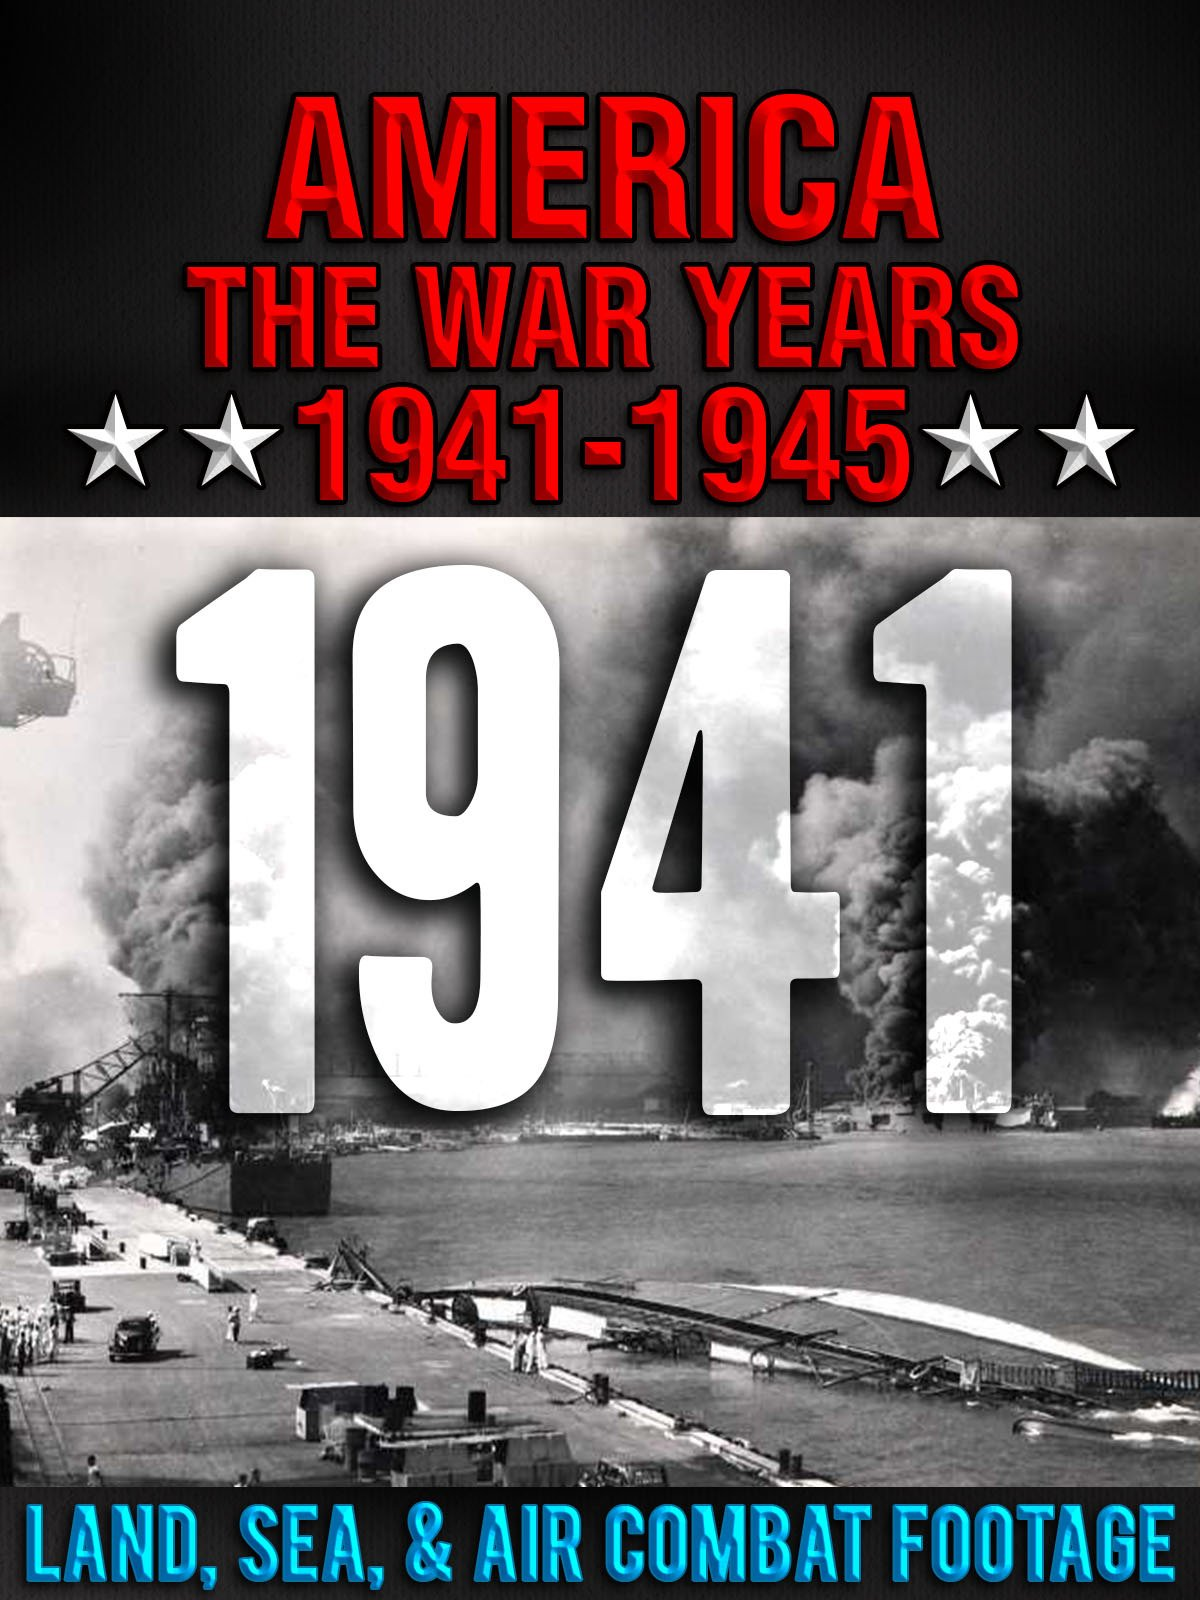 America The War Years 1941-1945: 1941 Land, Sea, Air Combat Footage on Amazon Prime Instant Video UK